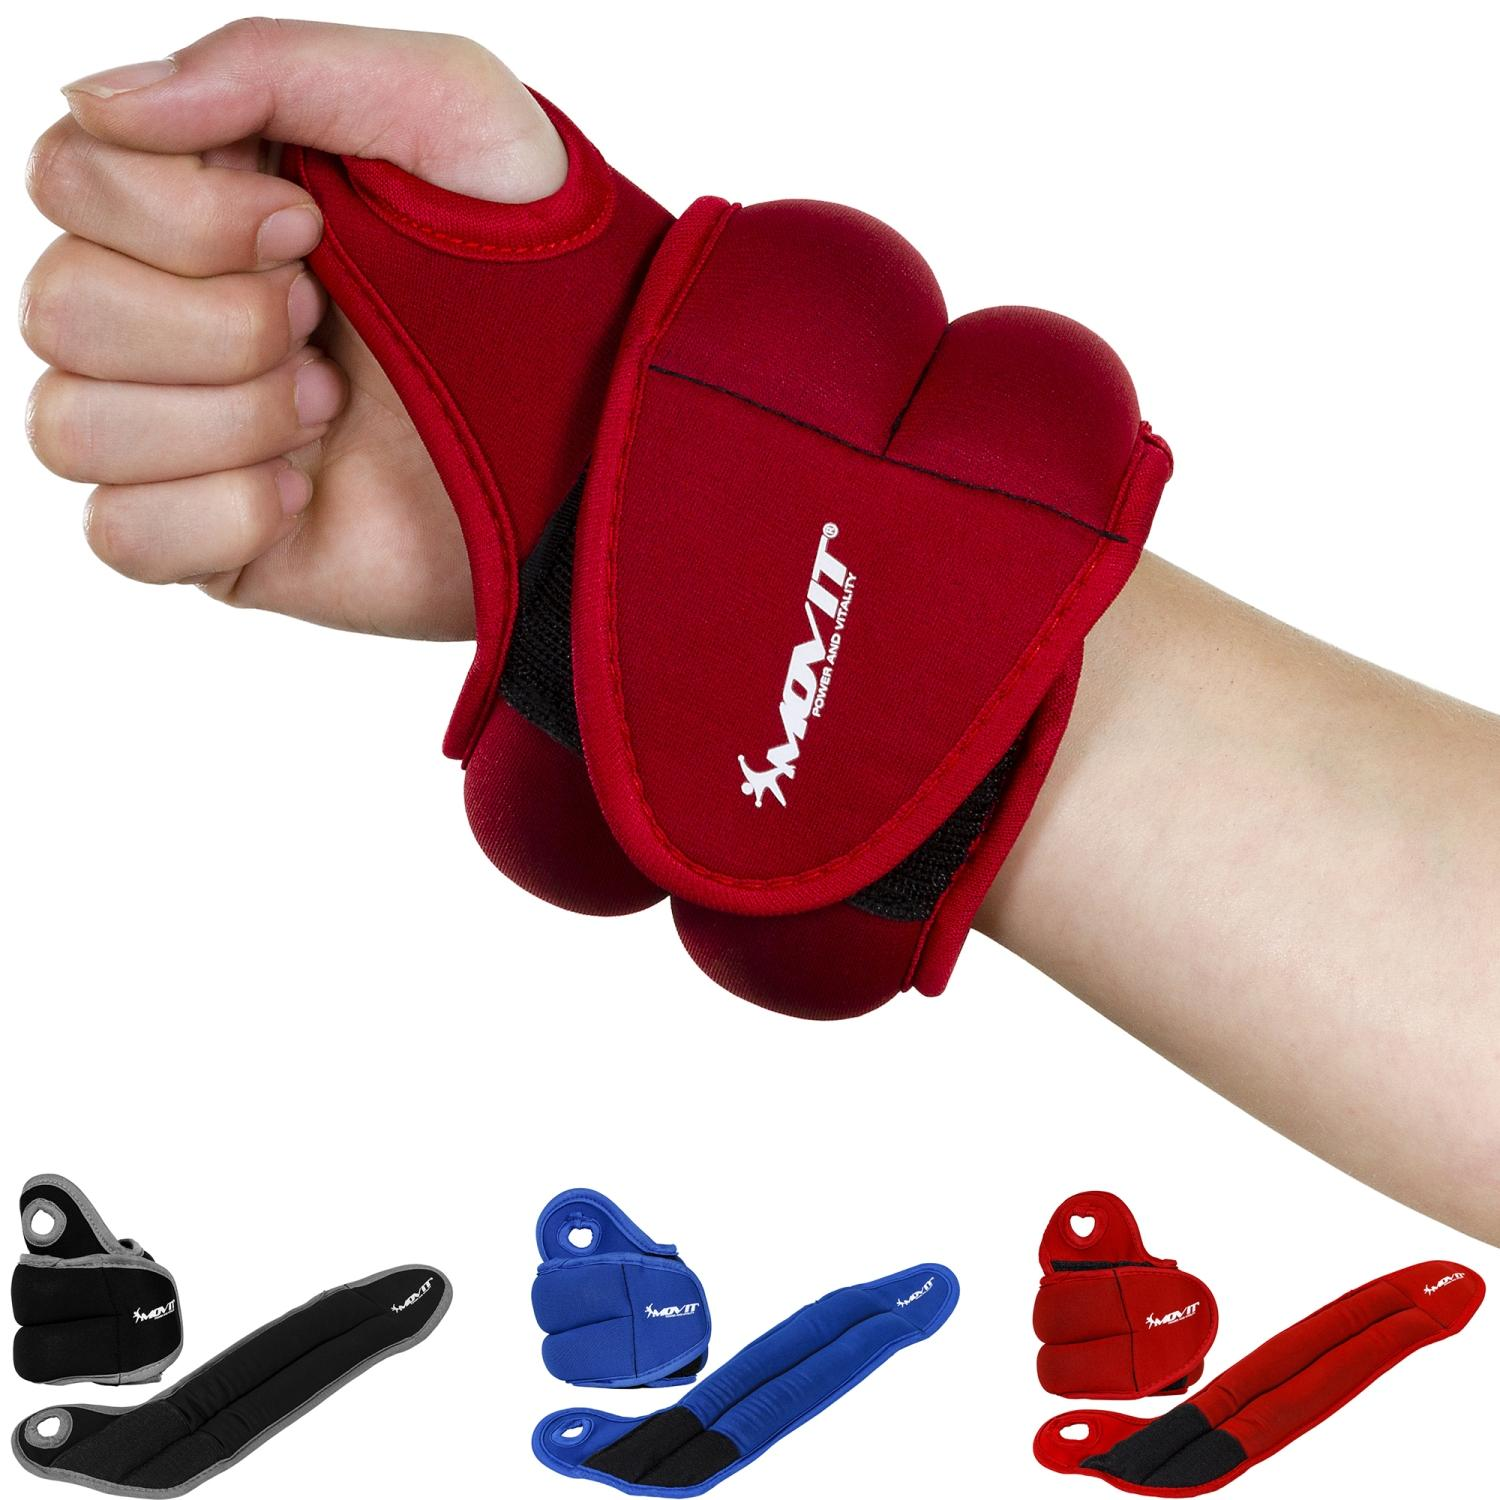 Movit 2x0.5kg Wrist Weights Red atsvari rokām